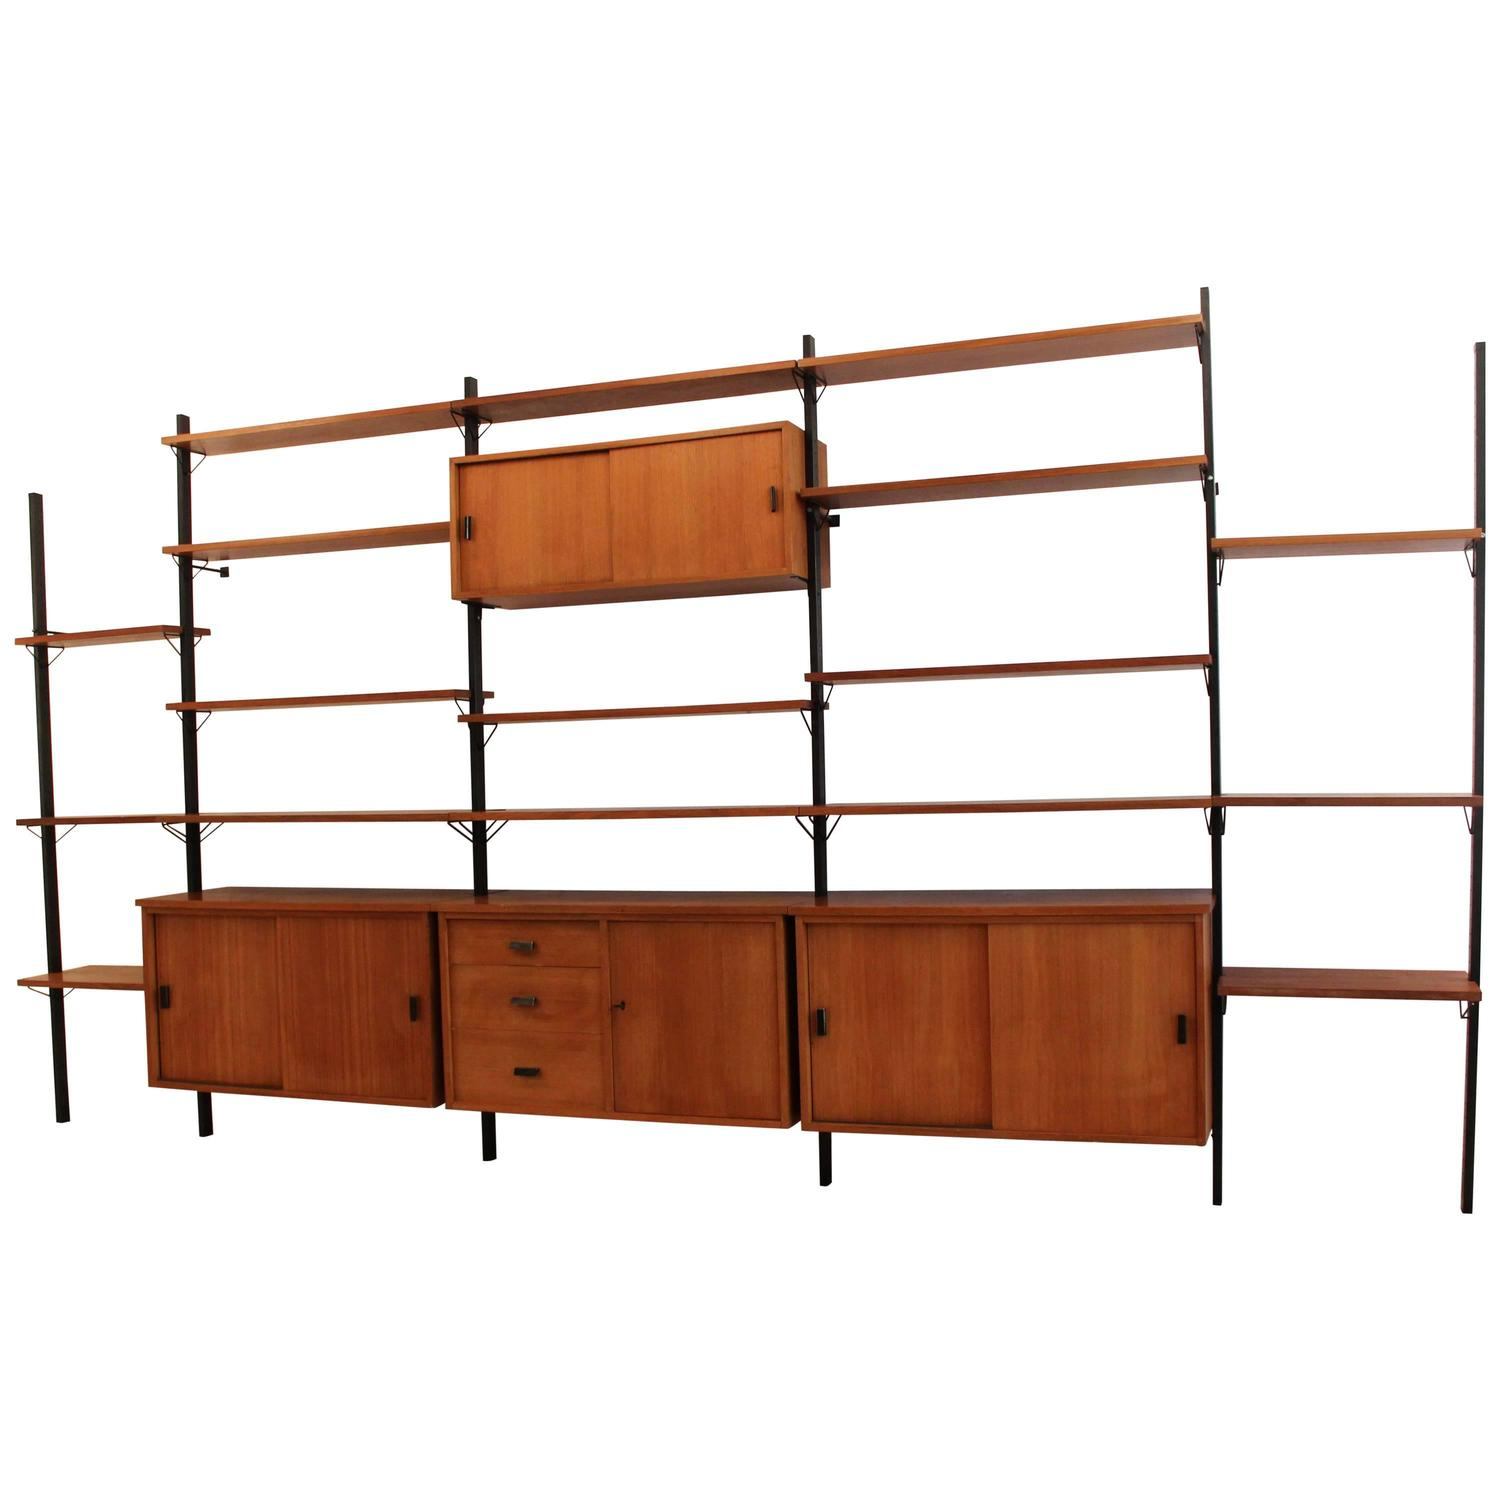 Mid Century Modern Wall Unit Shelving System Pira Sweden 1960 at